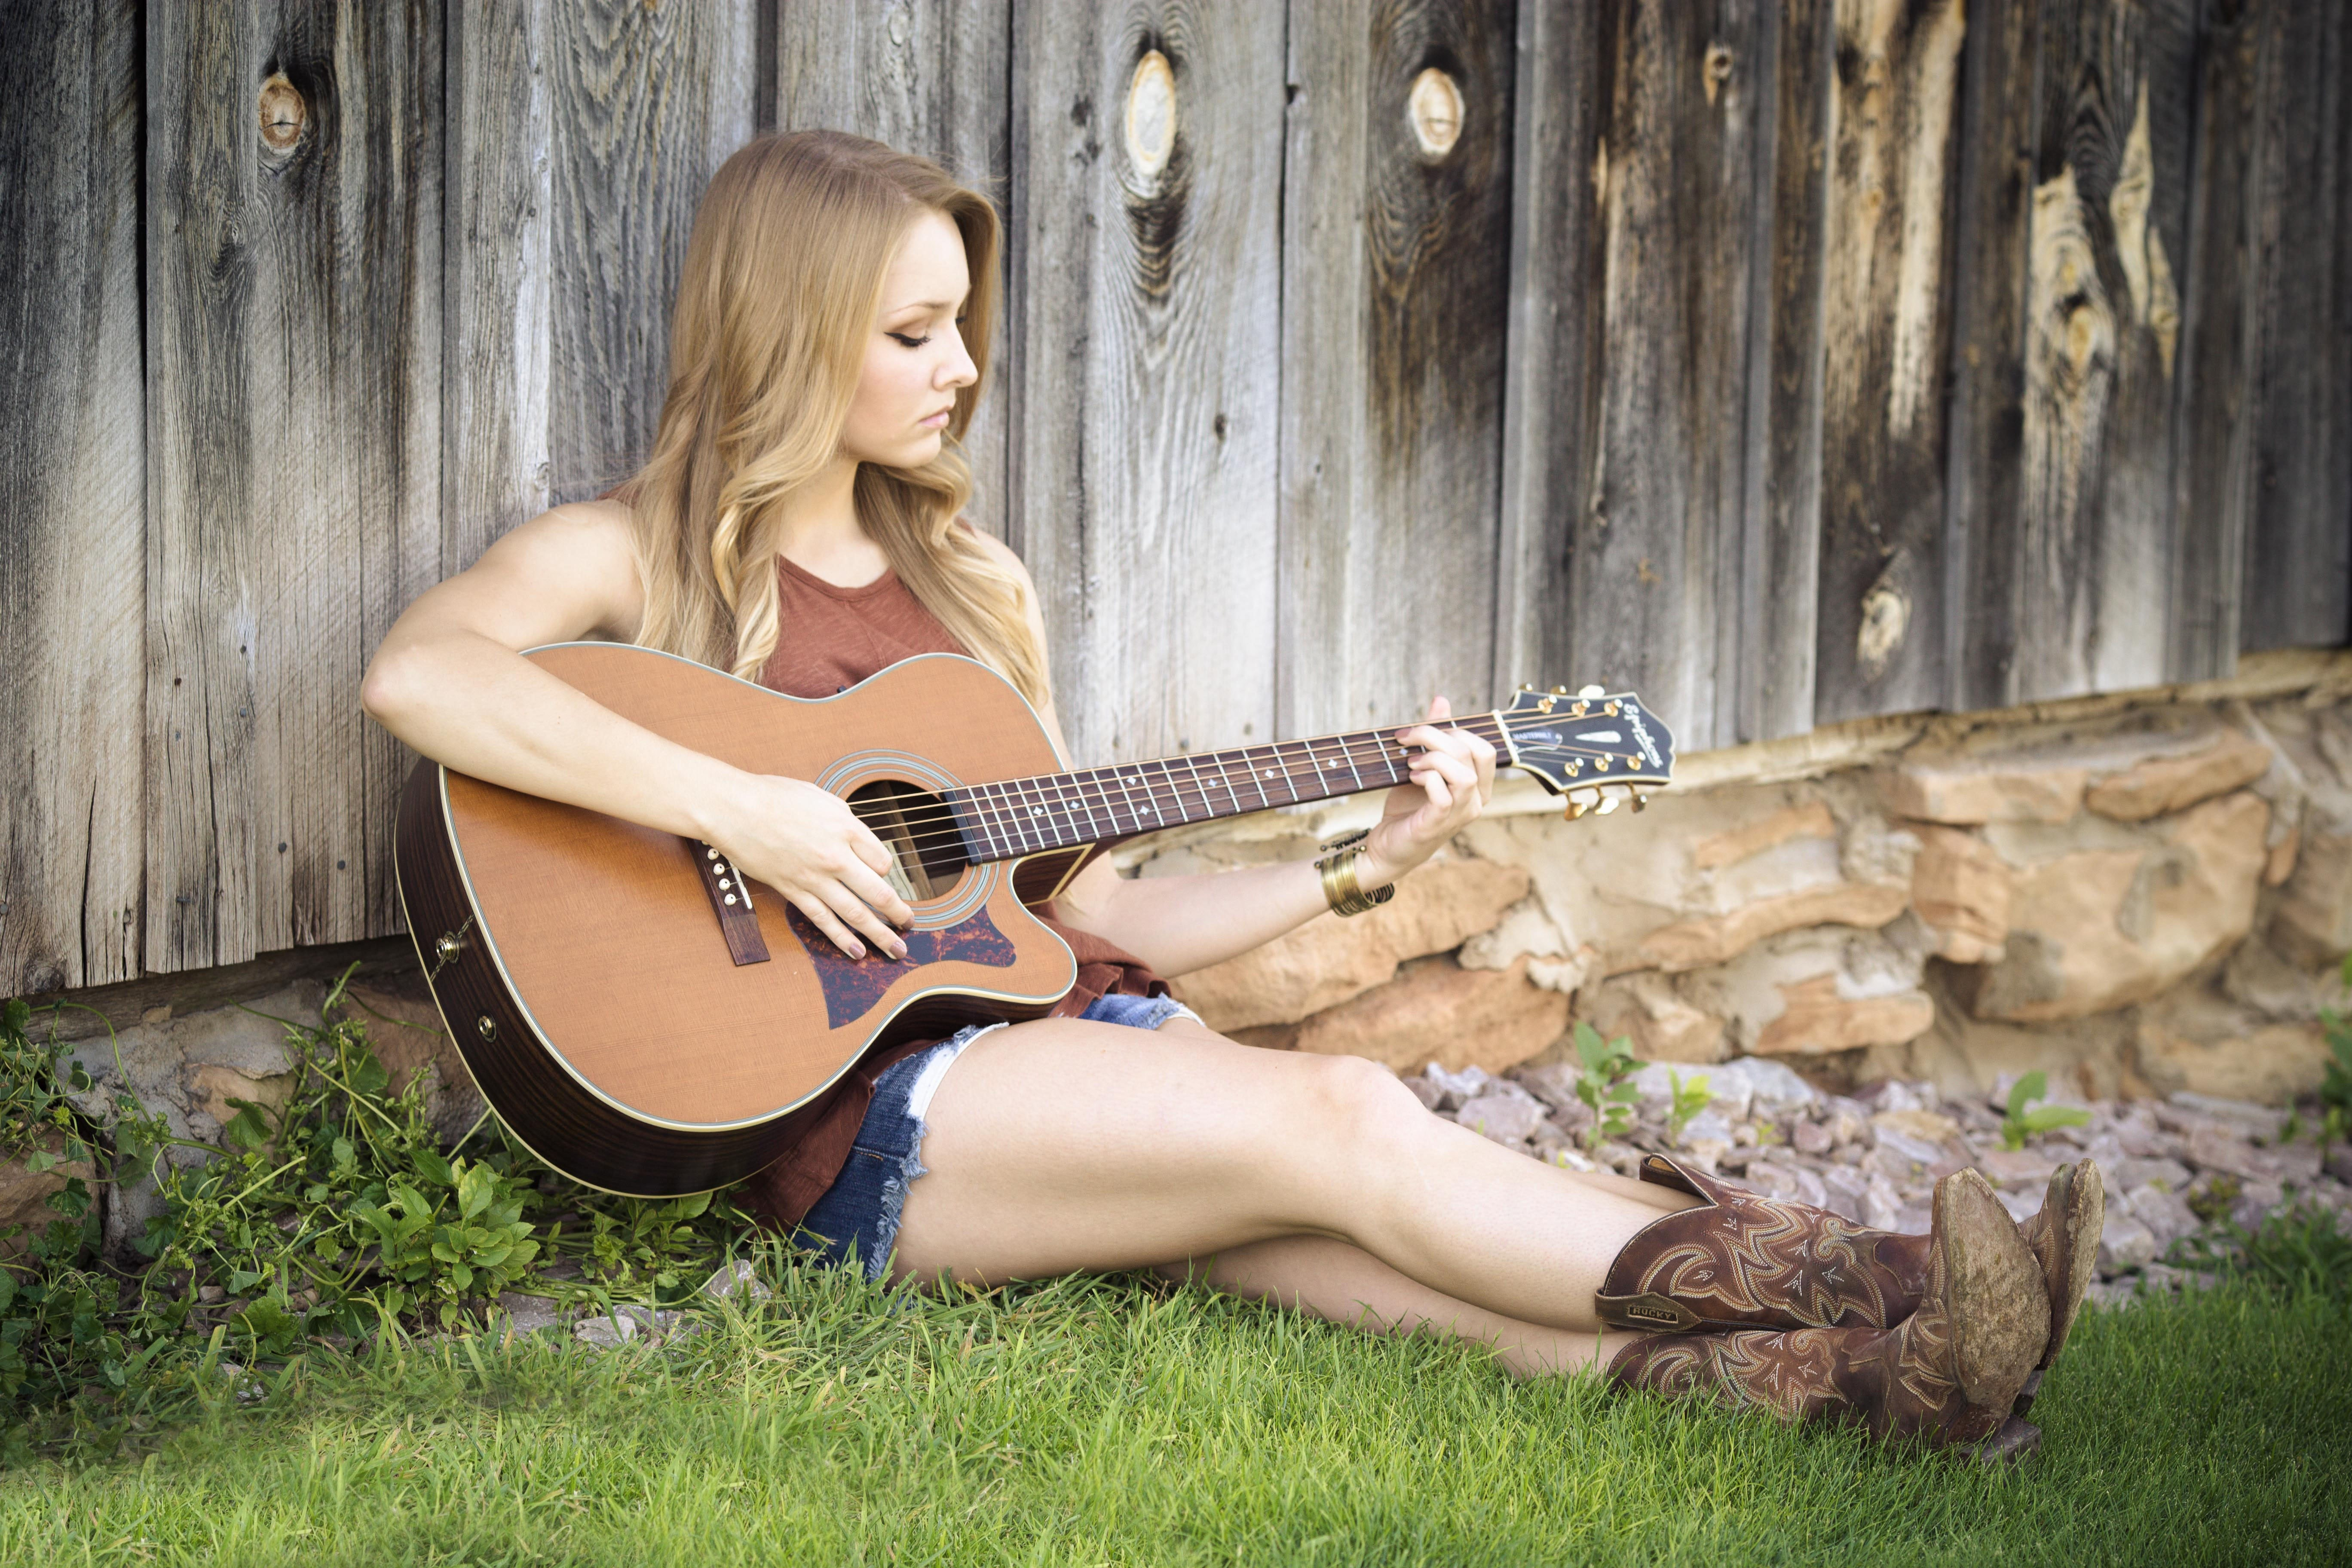 Woman in Brown Tank Top With Acoustic Guitar Sitting on Green Grass Beside Brown Wooden Fence, Acoustic guitar, Outdoors, Person, Photoshoot, HQ Photo